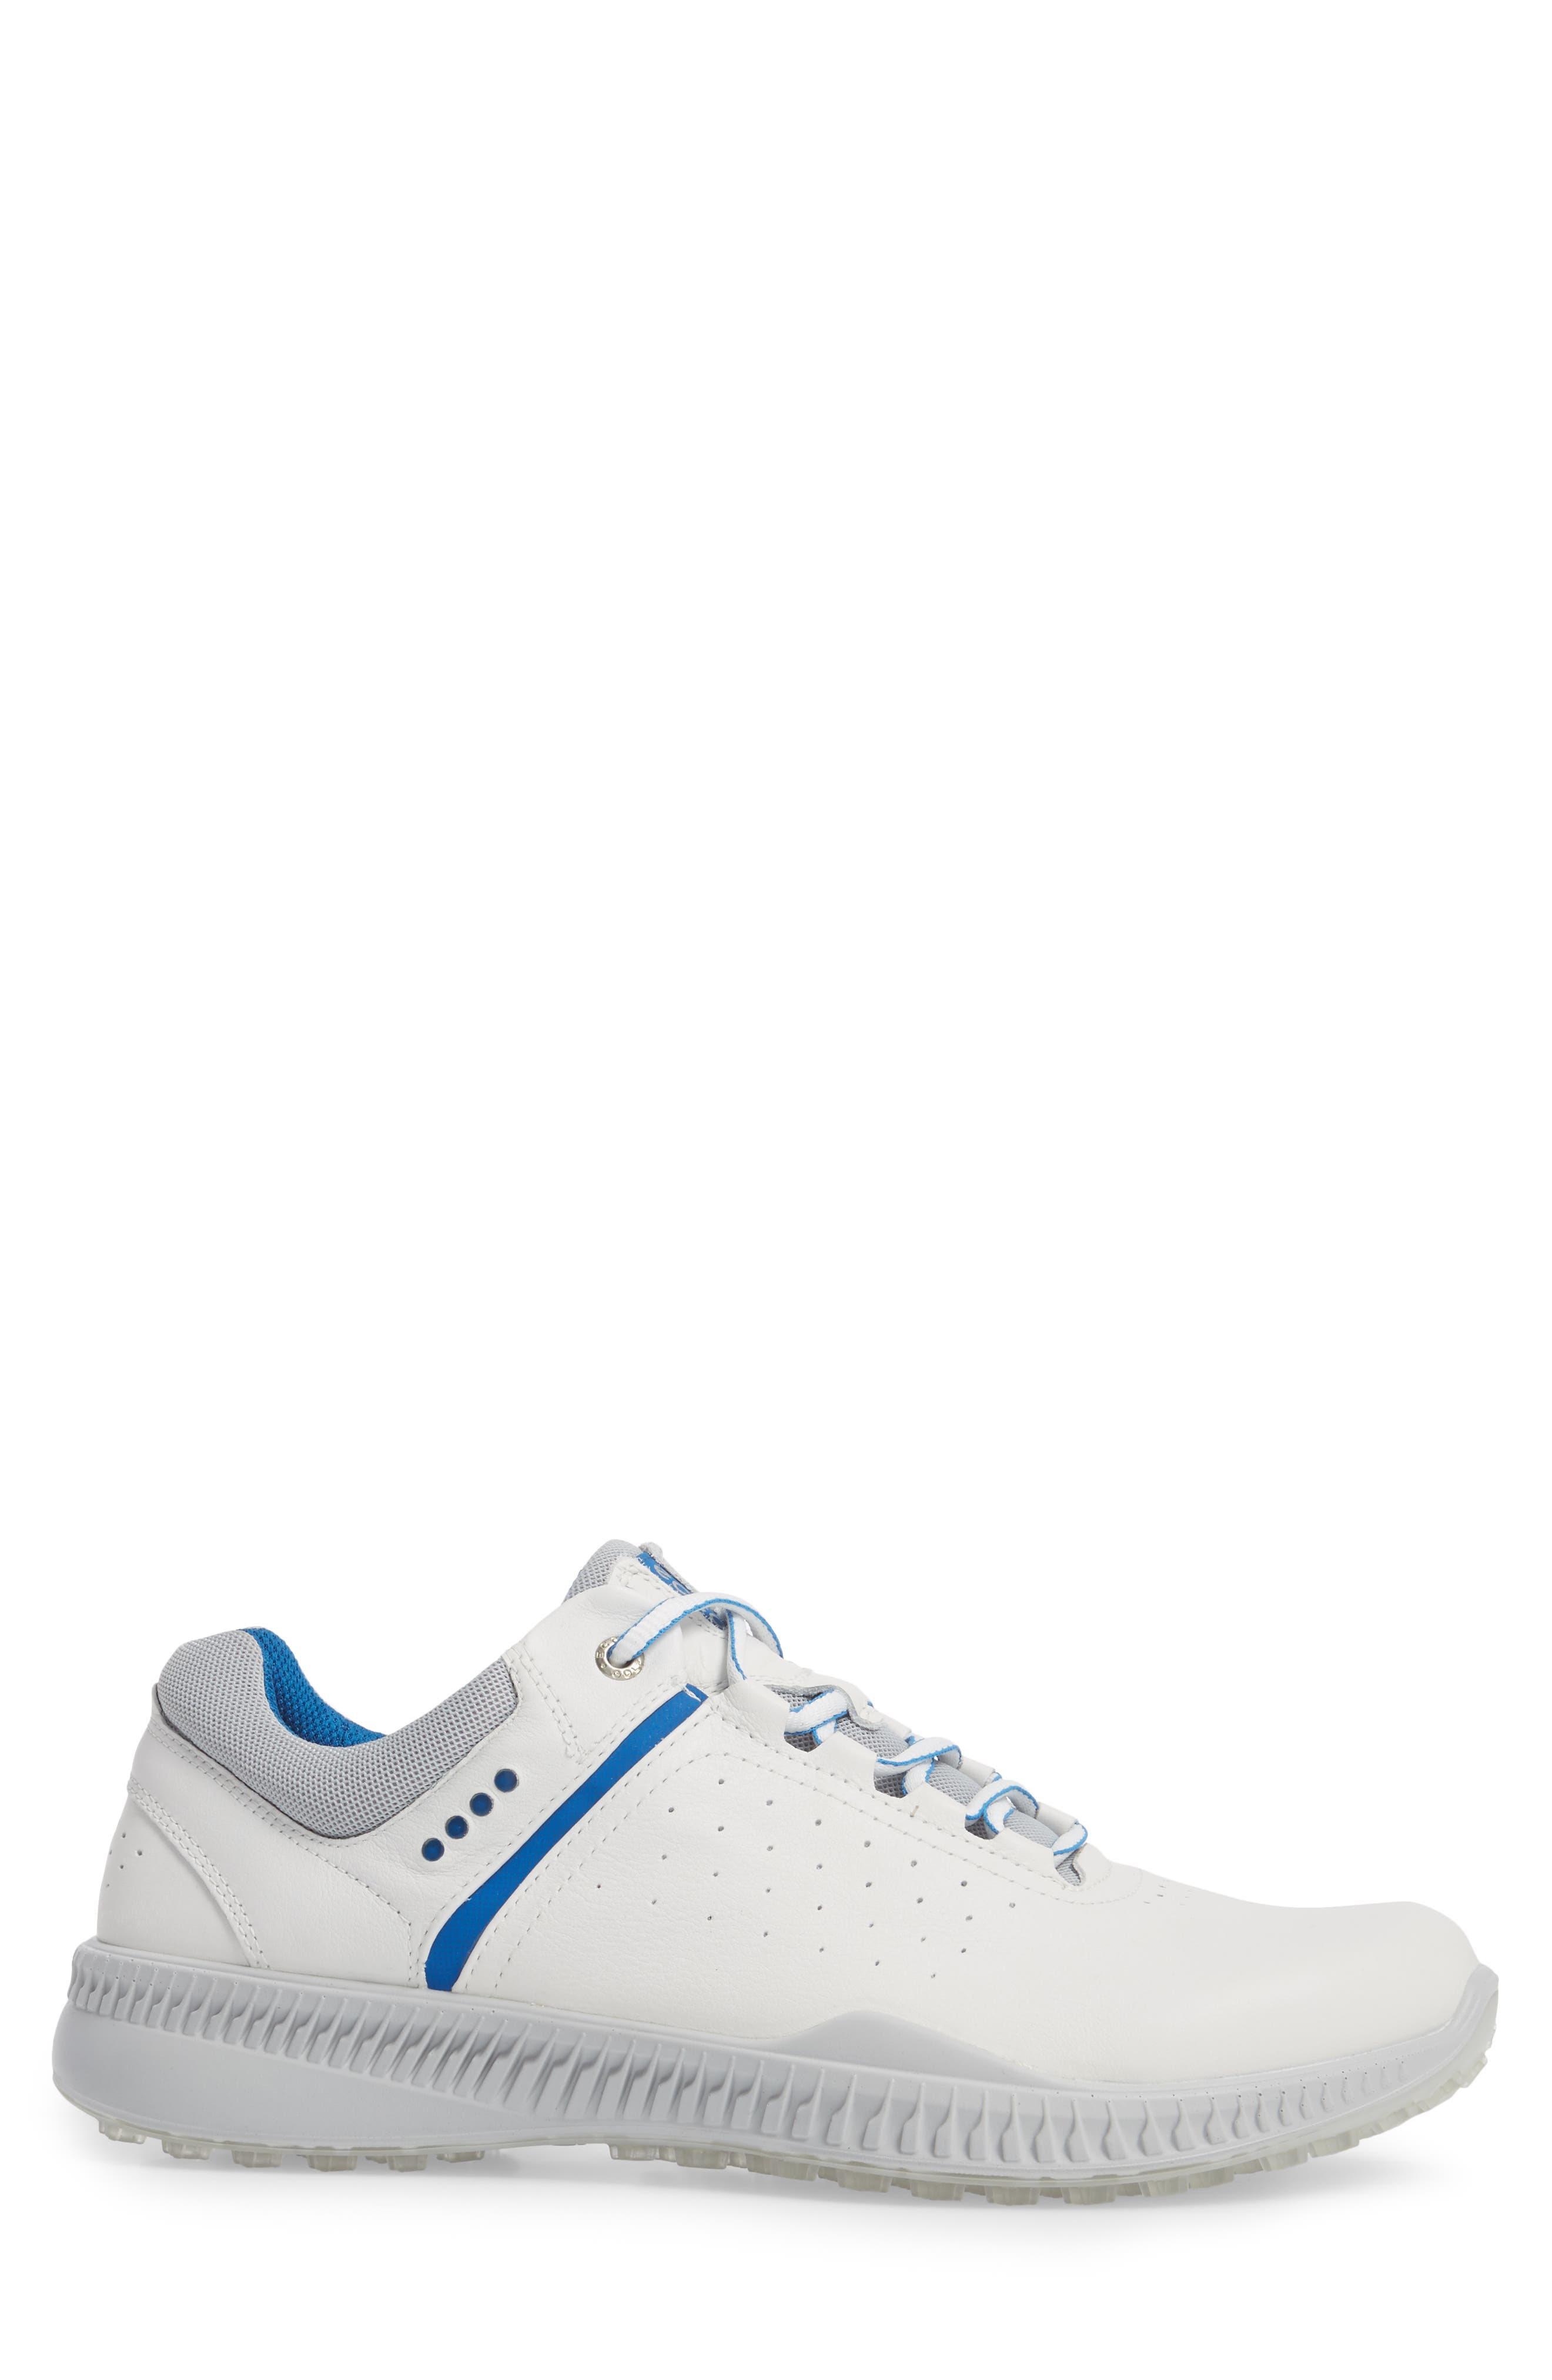 S-Drive Water Repellent Golf Shoe,                             Alternate thumbnail 3, color,                             White Leather